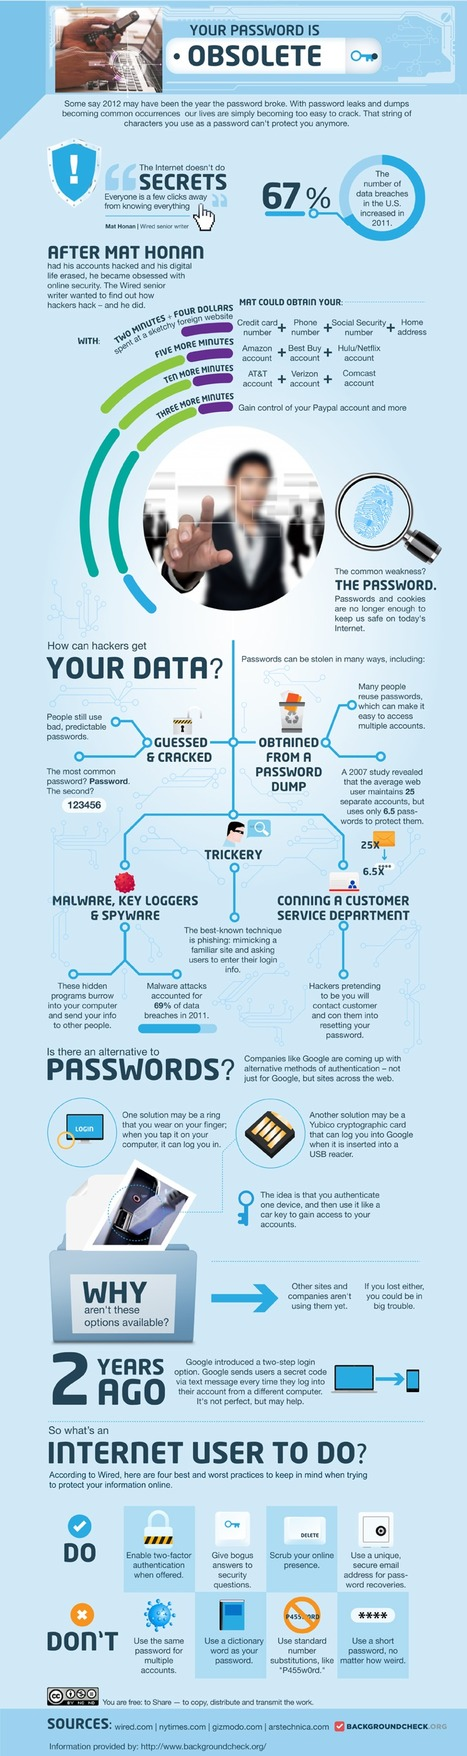 Passwords, Security and the Future of Authentication [#Infographic] | omnia mea mecum fero | Scoop.it